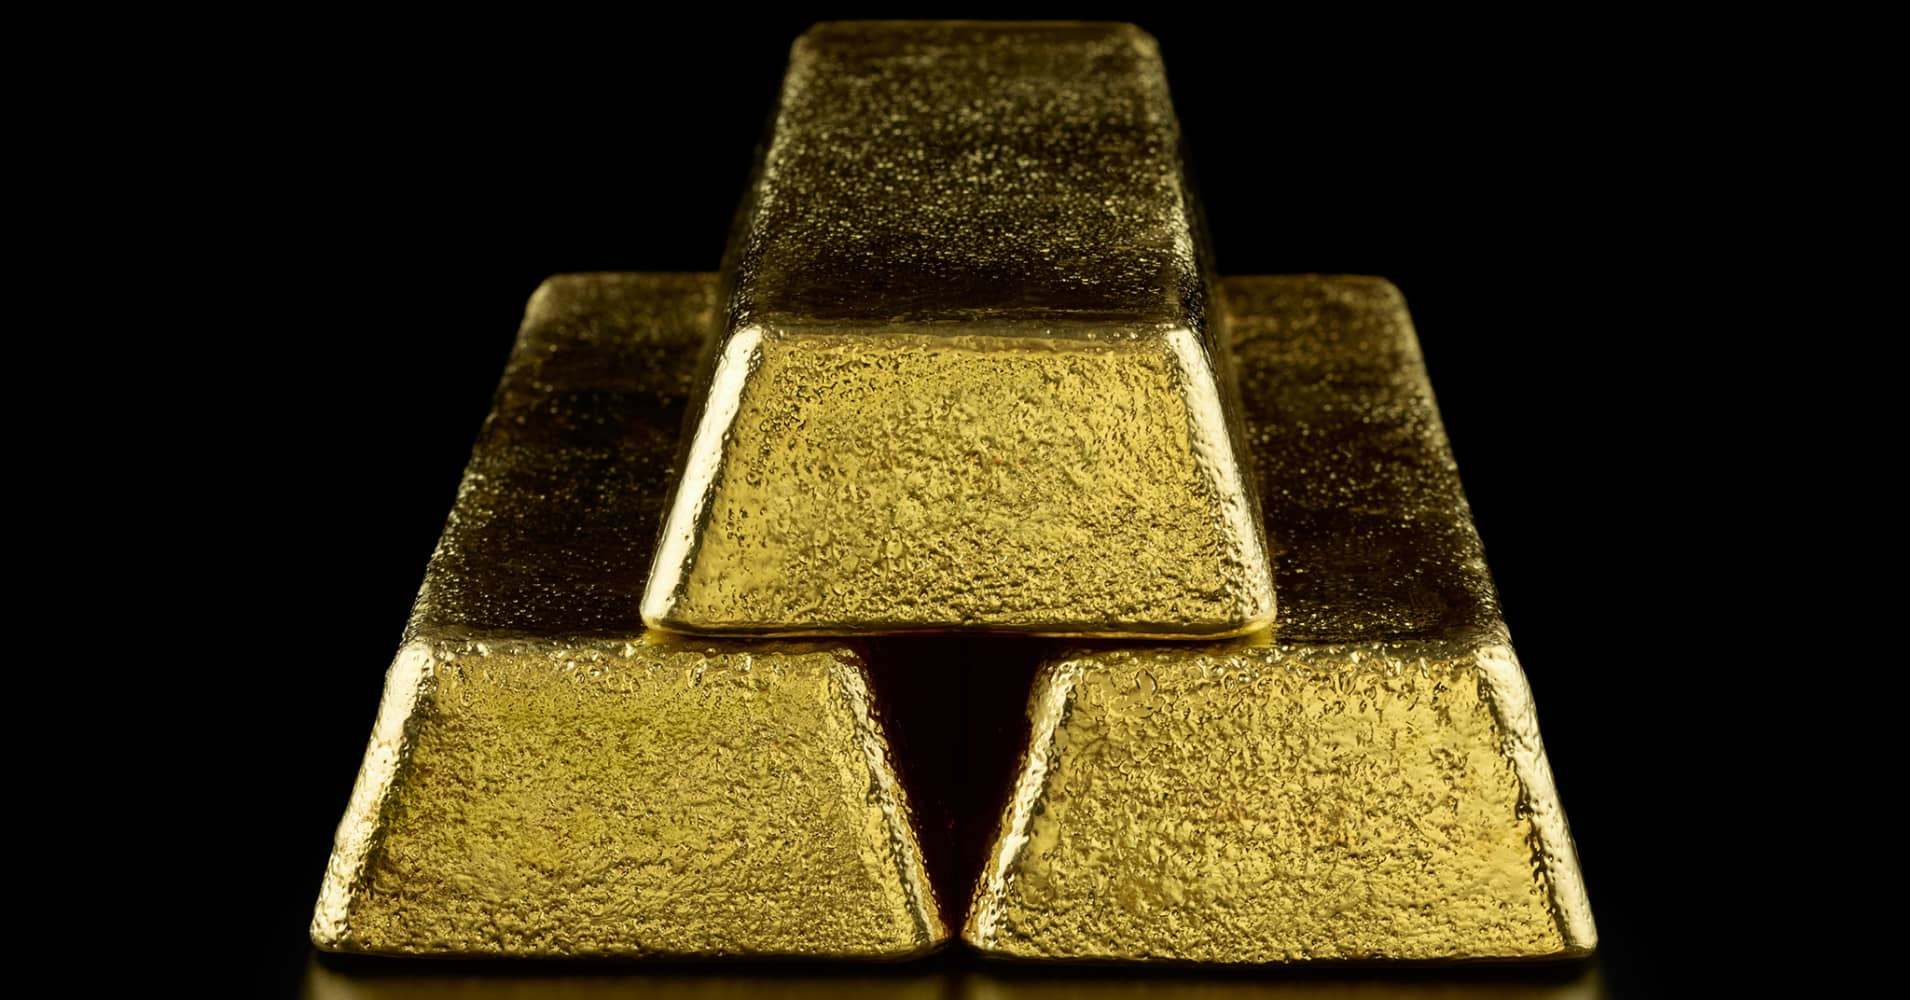 Gold inches down as greenback firms against the yuan